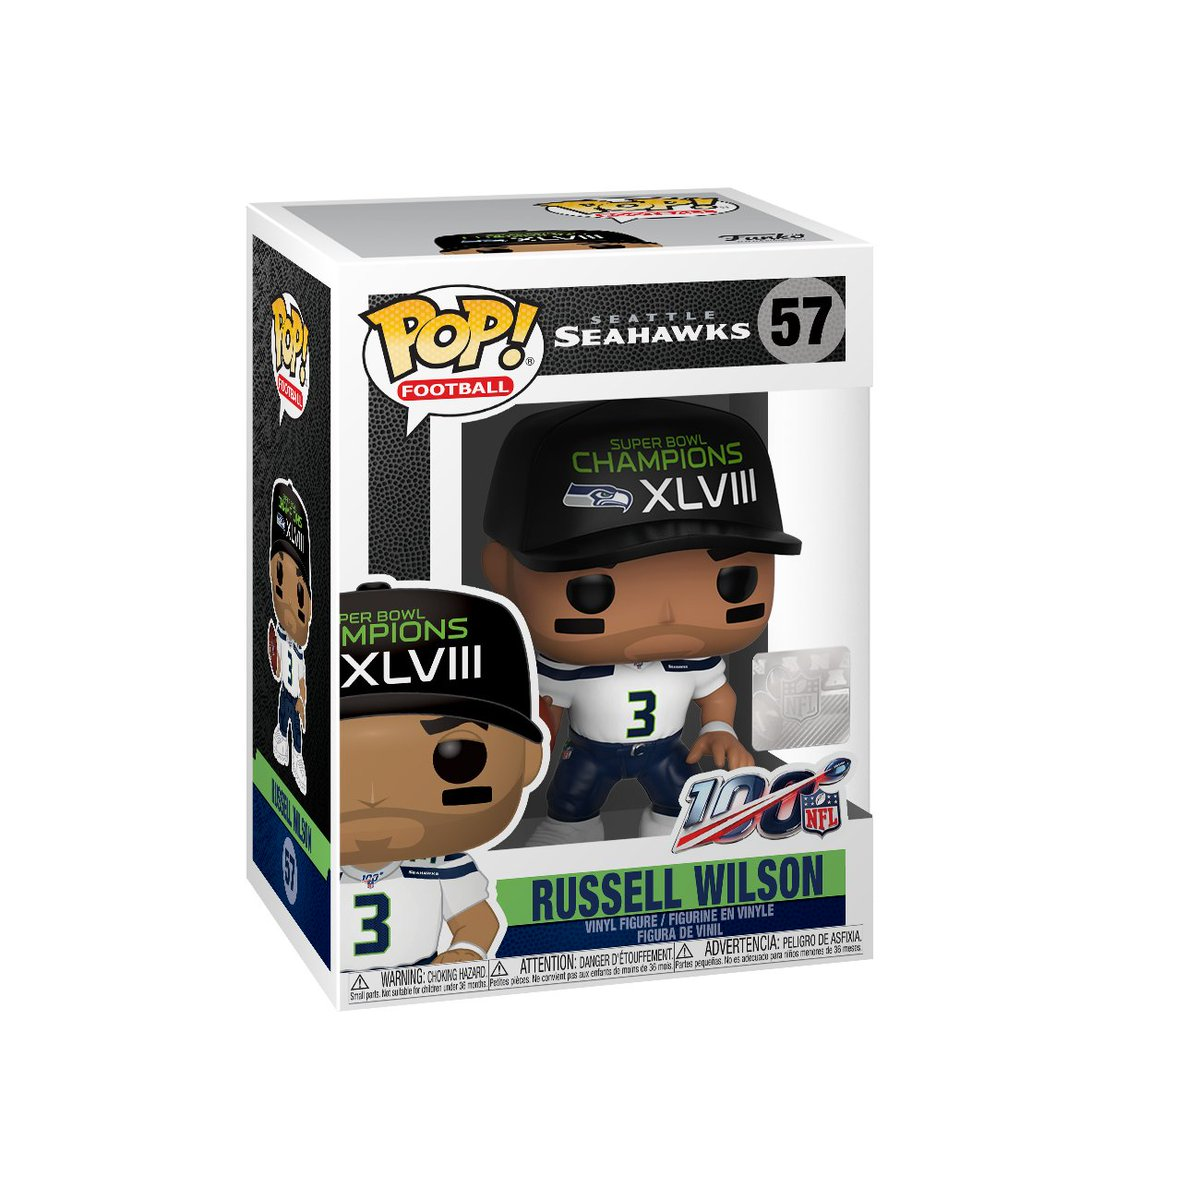 RT & follow  @OriginalFunko for a chance to WIN a Russell Wilson Pop!    #Funko  #FunkoPop  #giveaway  #Seahawks   #MNF  #MINvsSEA